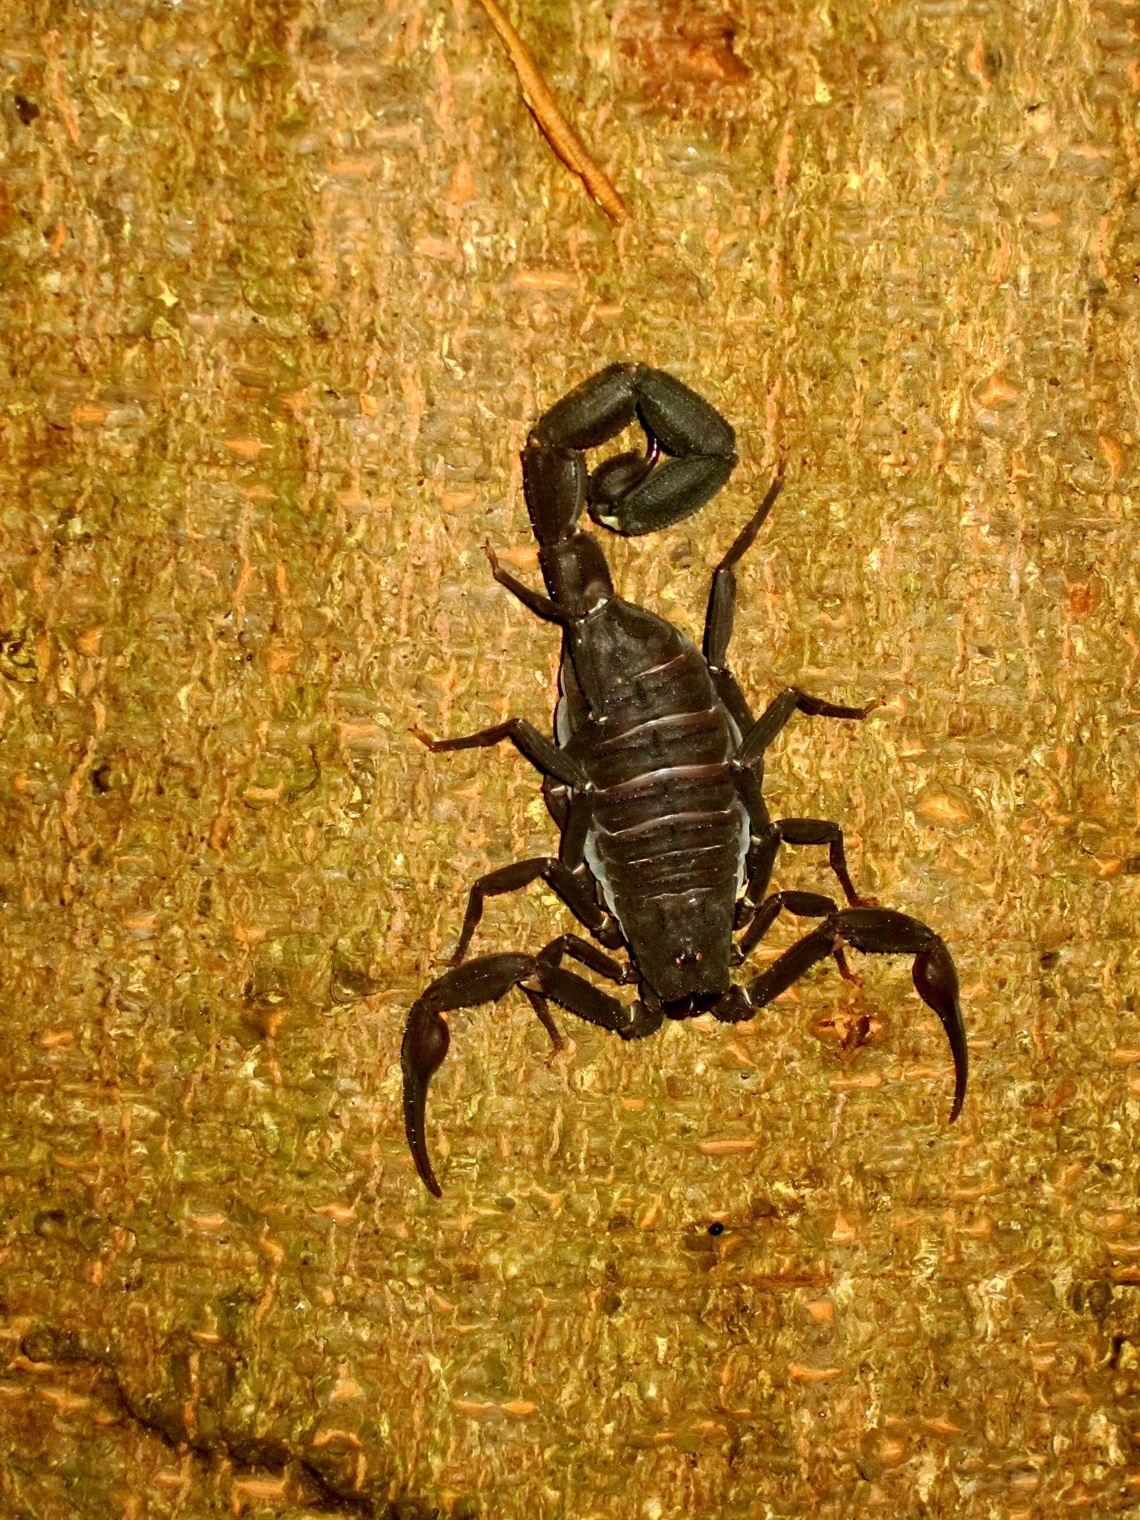 Scorpion of the Amazon